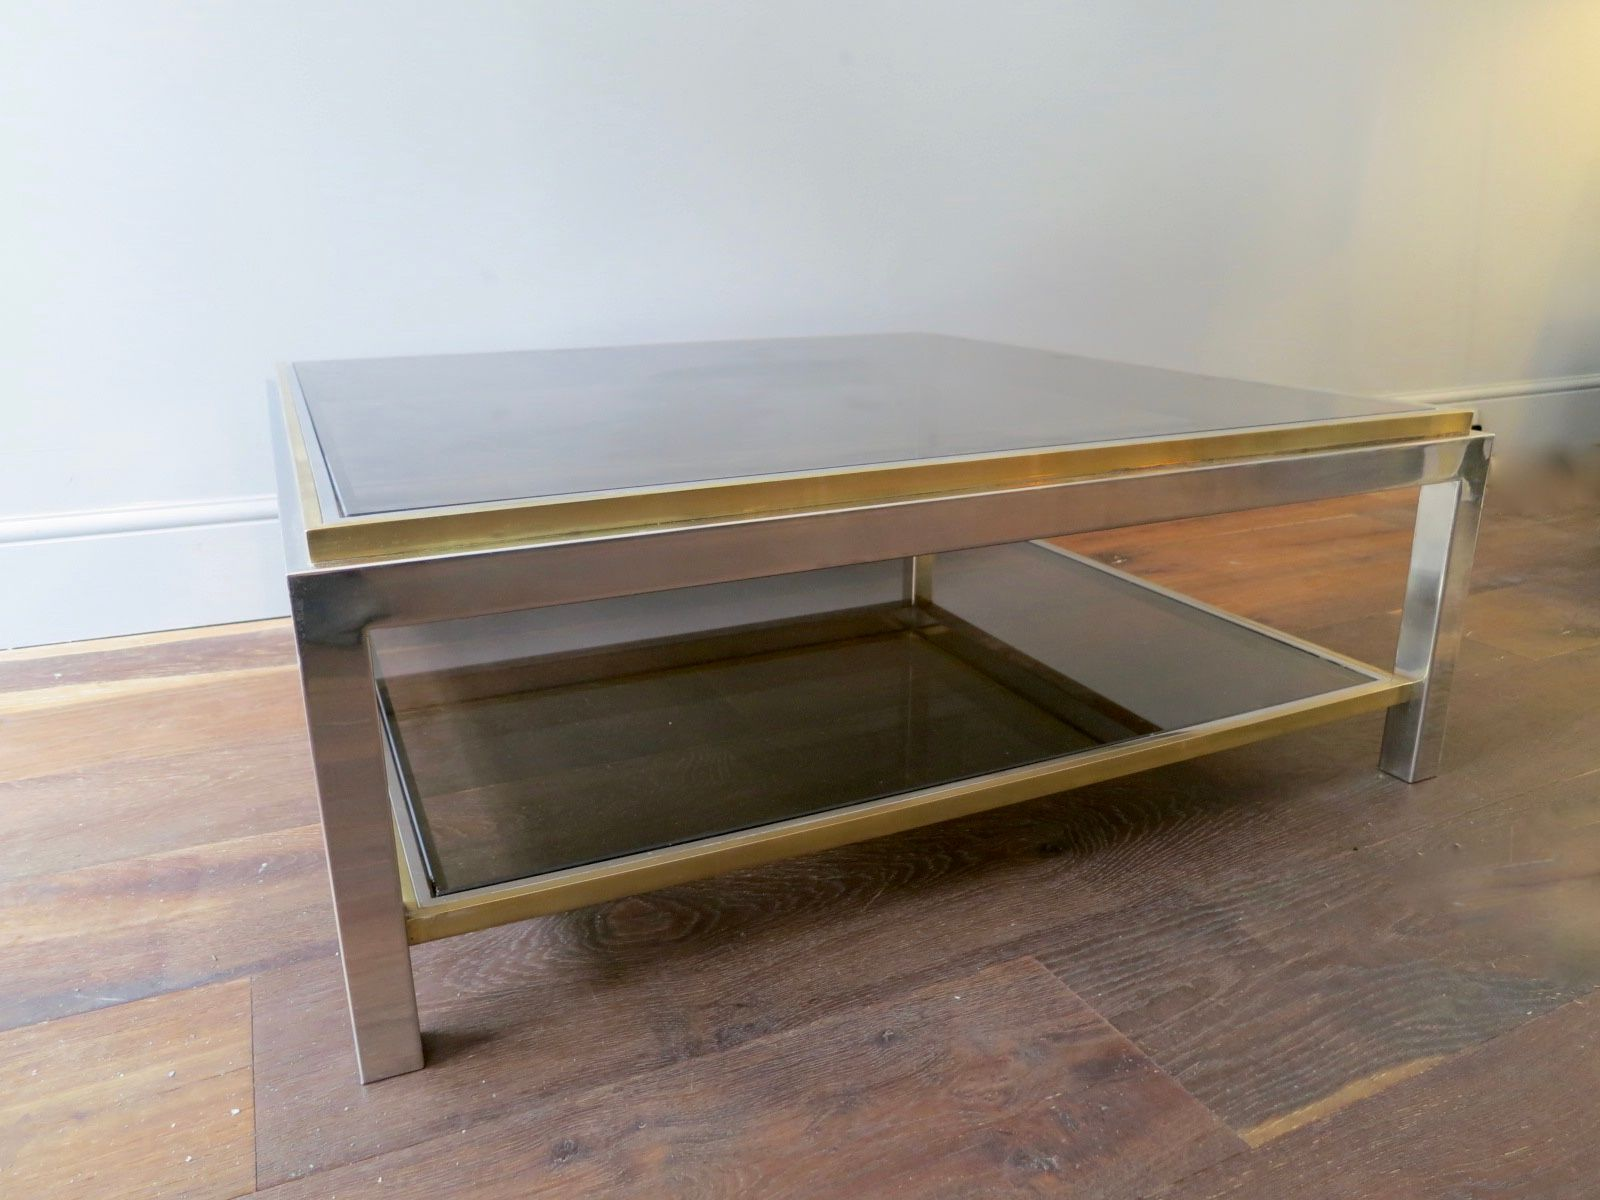 Vintage Square Chrome & Brass Coffee Table by Jean Charles for